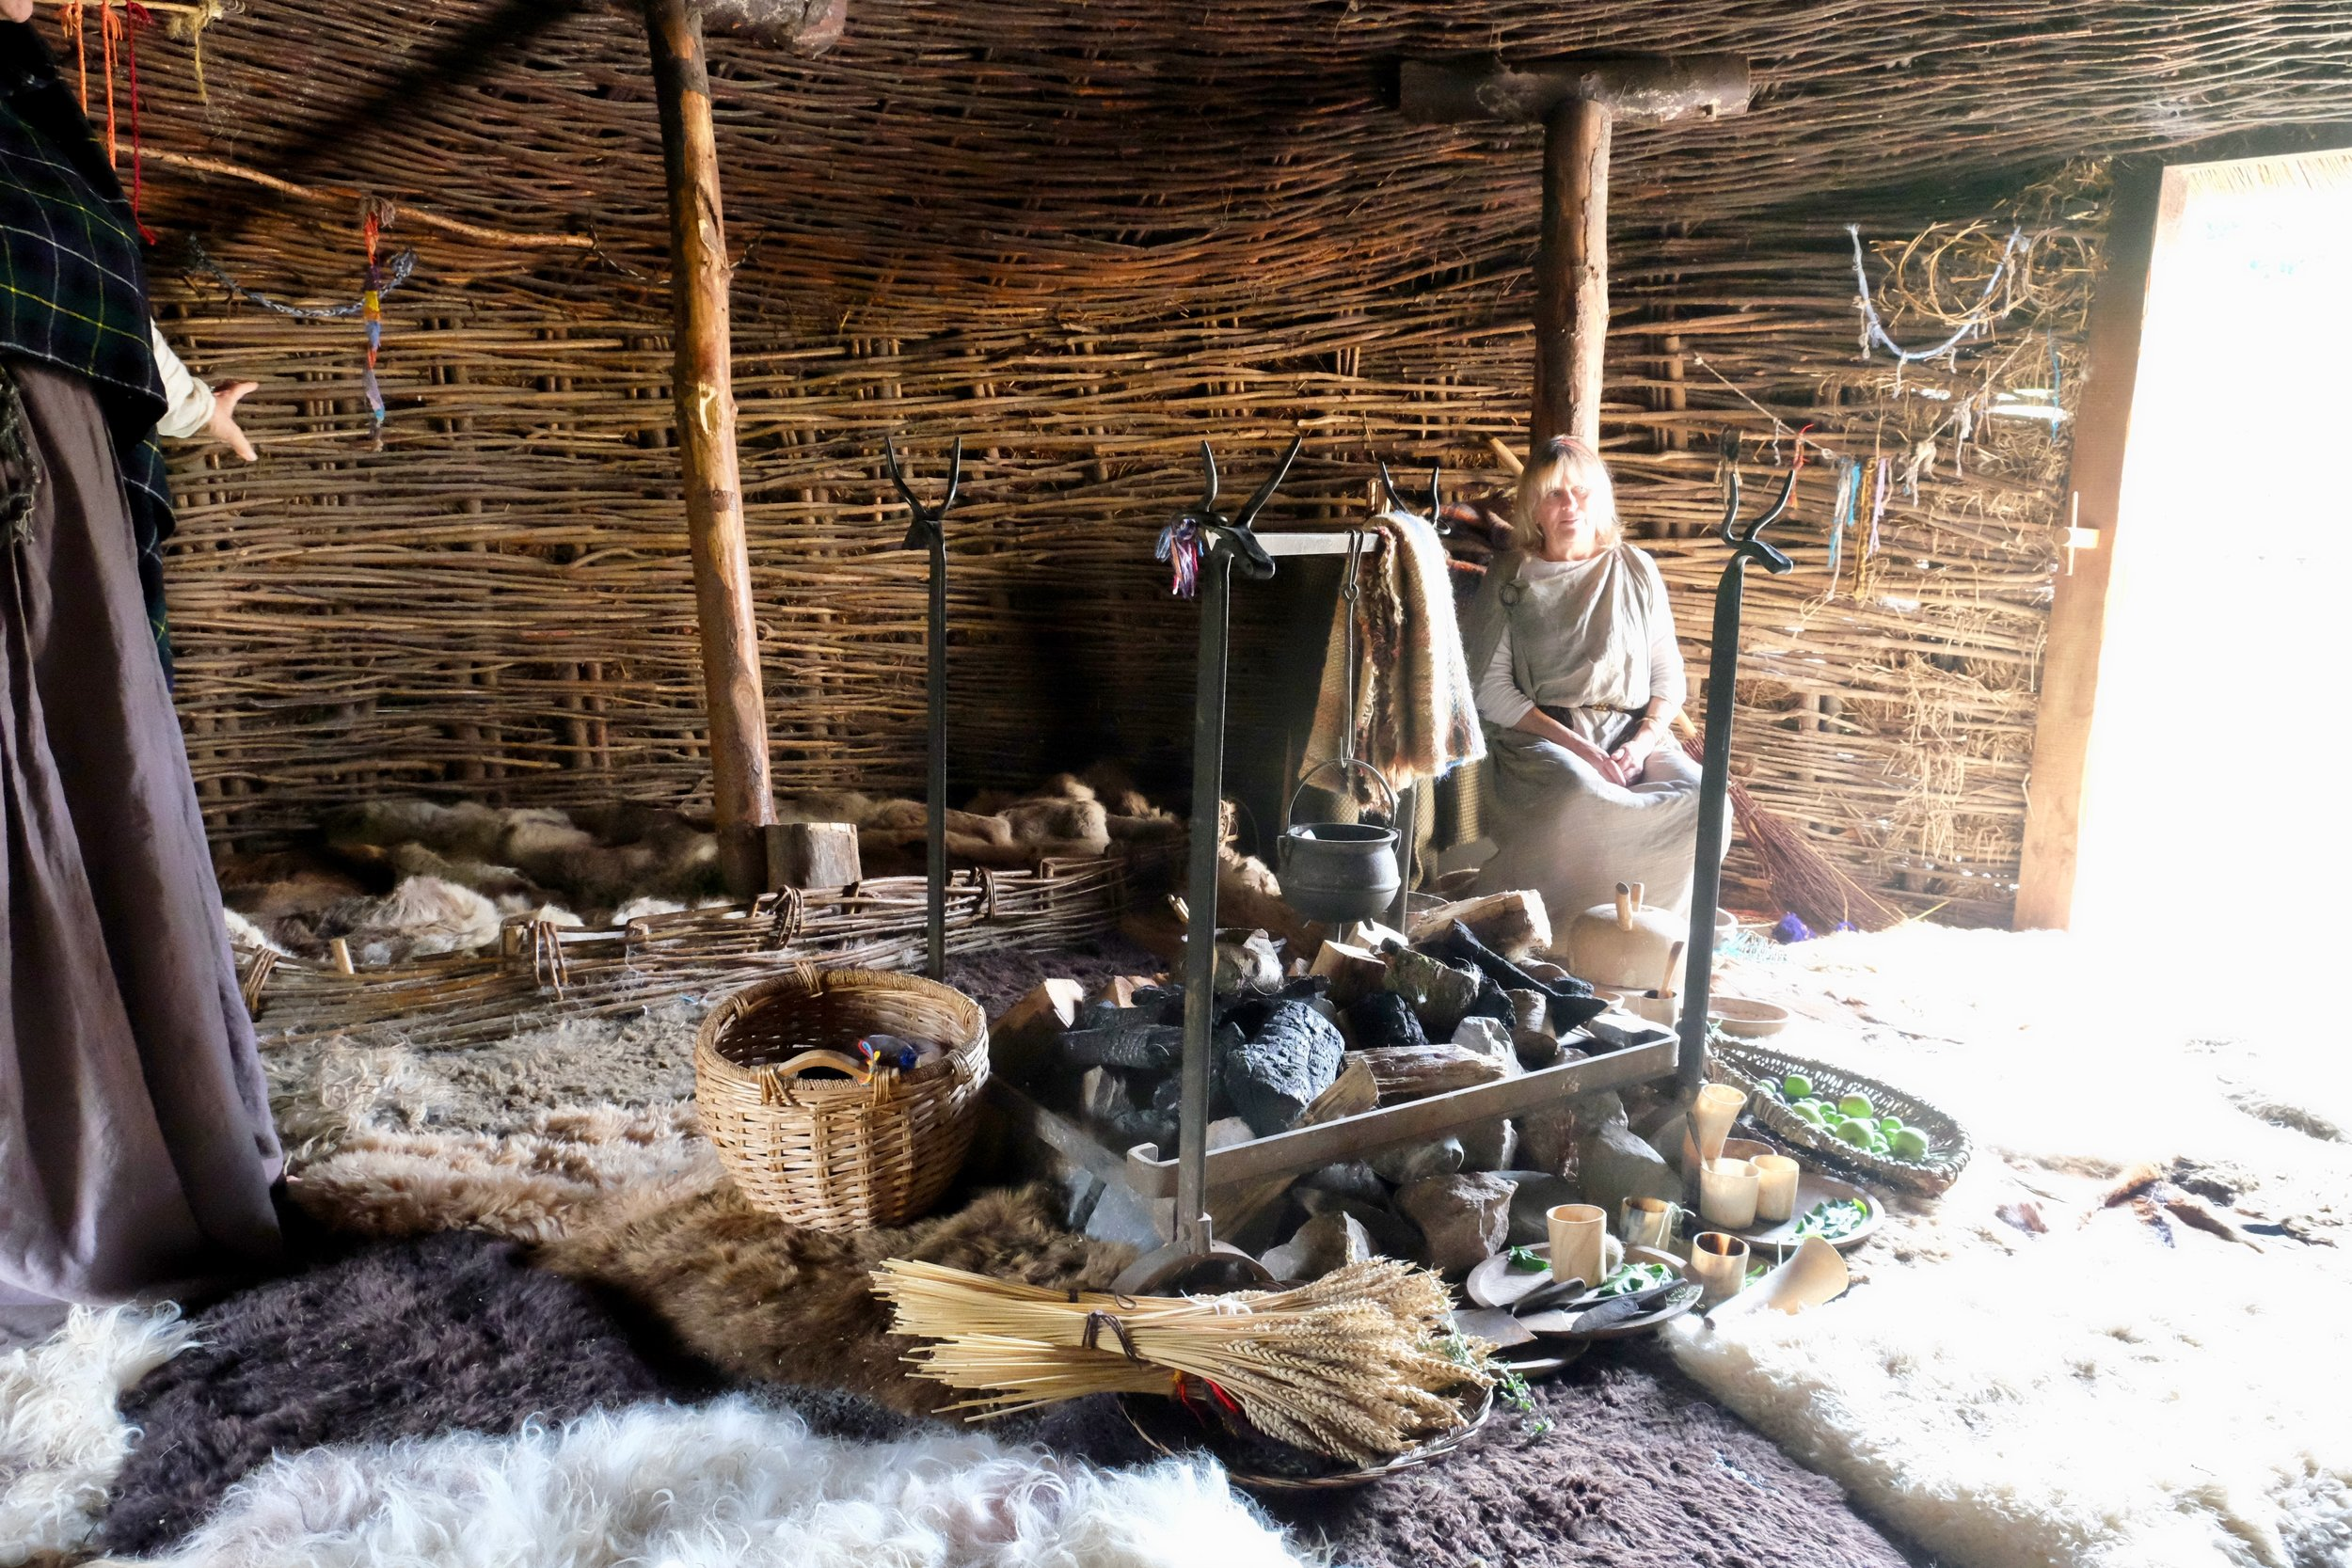 The inside of a traditional mound house, where a family of up to 8 could live.